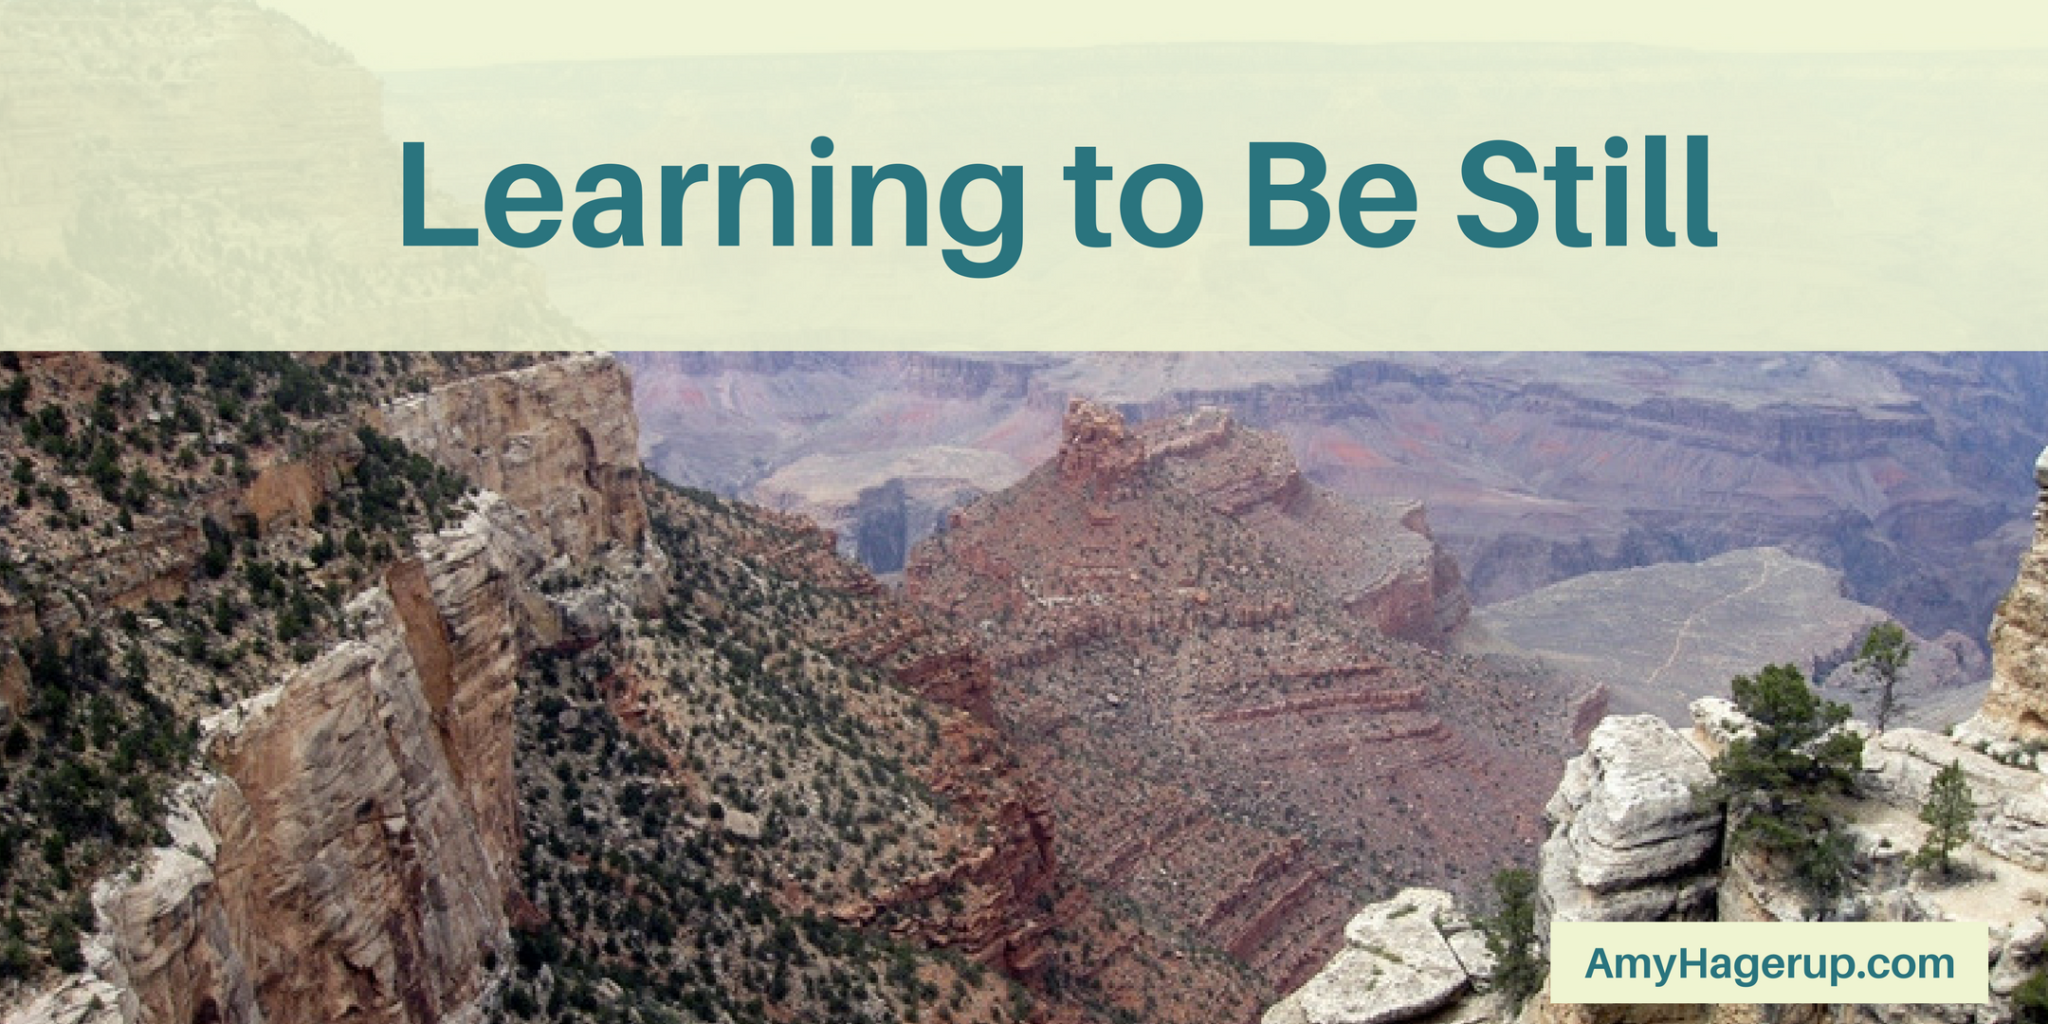 Check out this time at Grand Canyon on learning to be still.